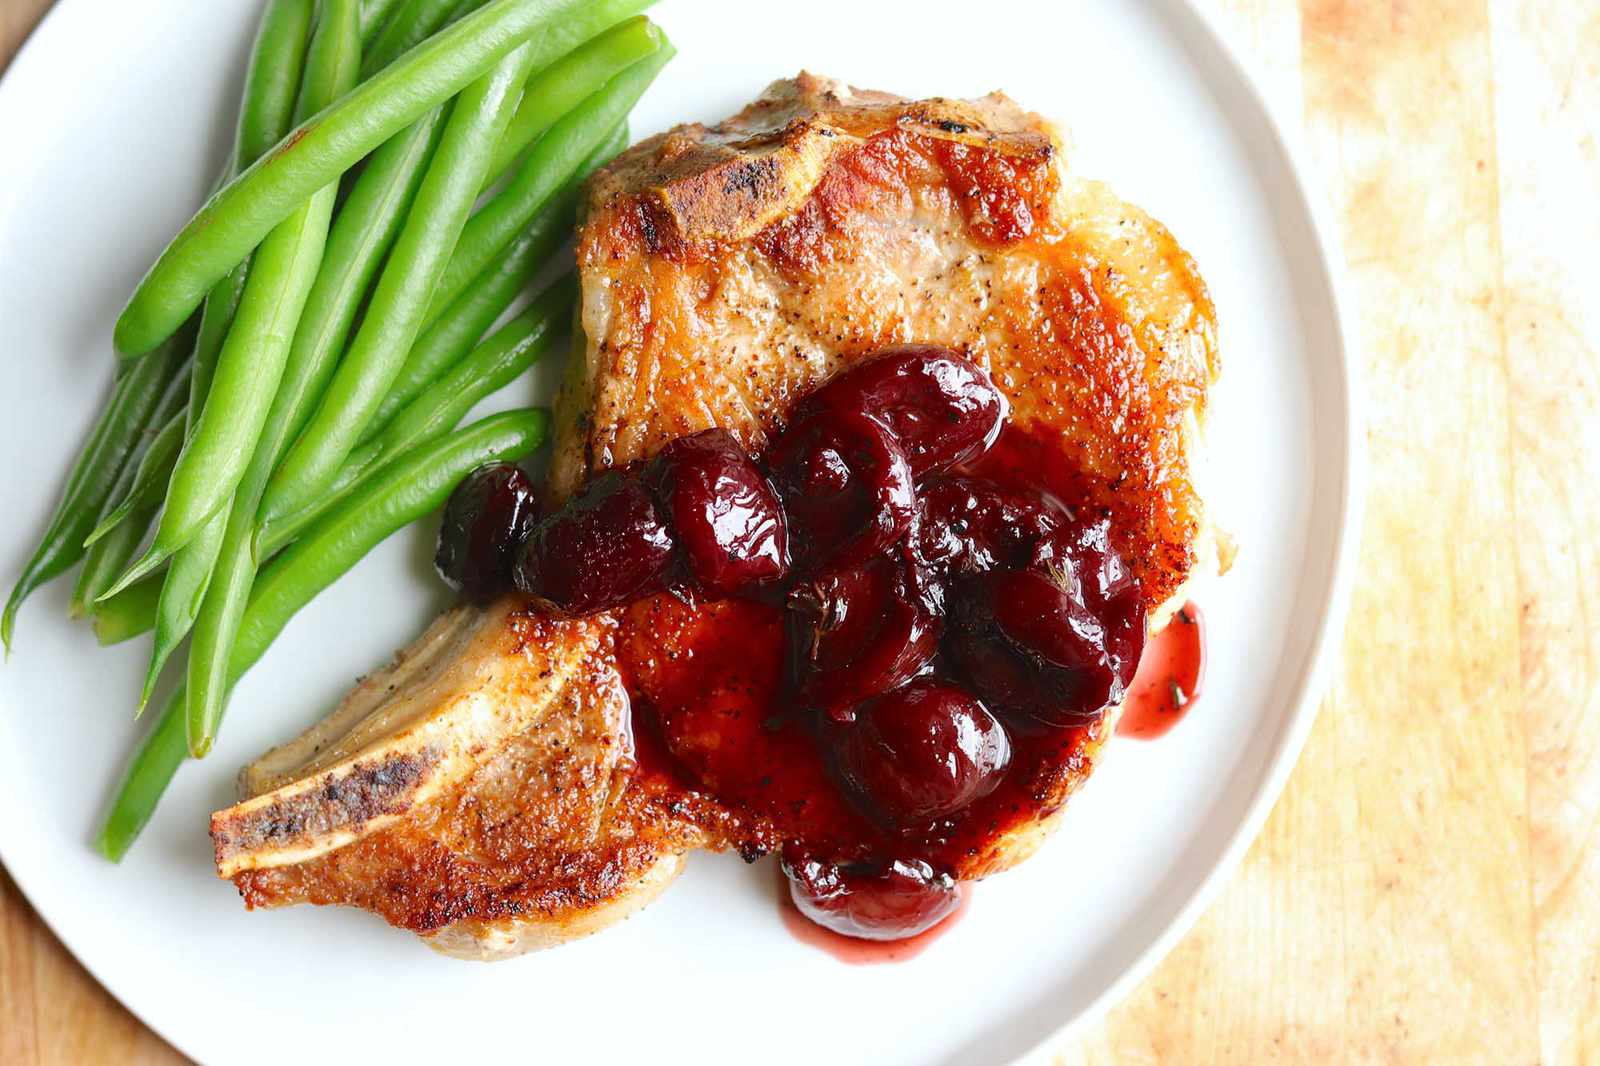 Overhead view of a a stove top pork chop topped with cherry sauce with a side of green beans.